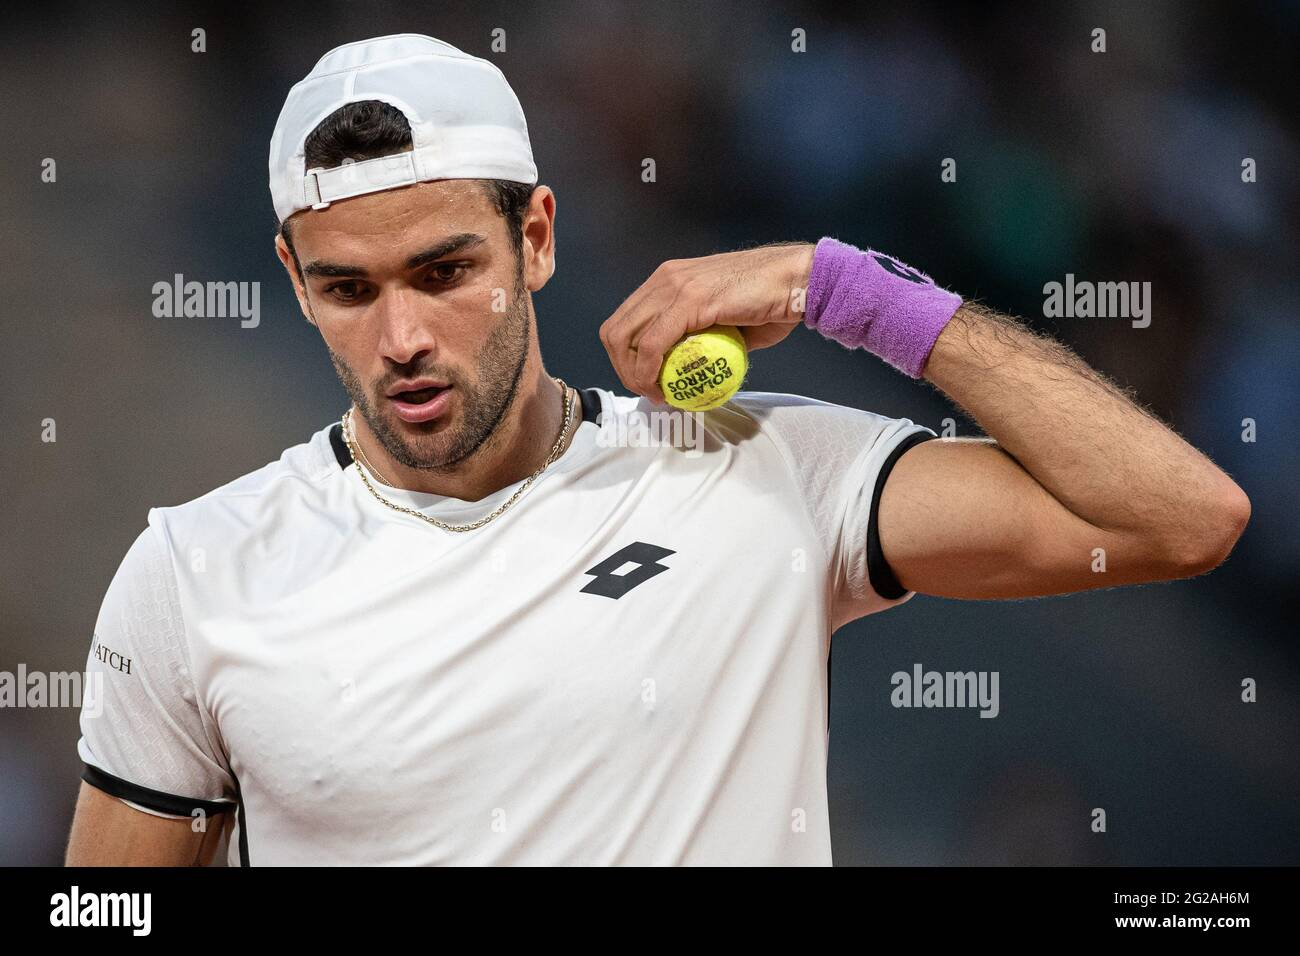 Paris, France. 9th June, 2021. Matteo Berrettini of Italy reacts during the men's singles quarterfinal against Novak Djokovic of Serbia at the French Open tennis tournament at Roland Garros in Paris, France, June 9, 2021. Credit: Aurelien Morissard/Xinhua/Alamy Live News Stock Photo